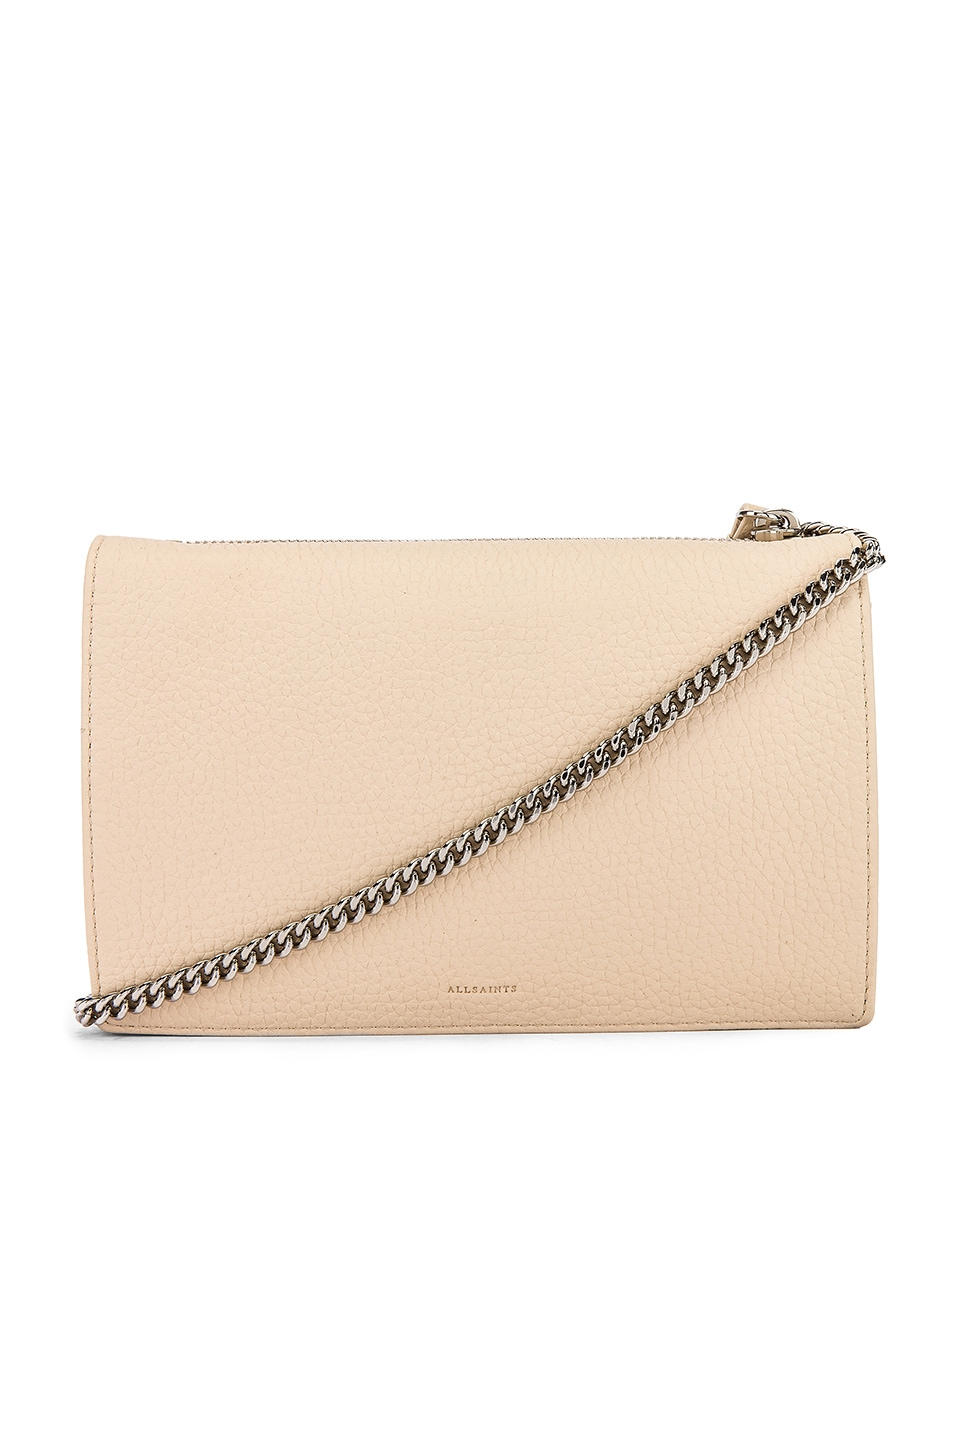 ALLSAINTS Fetch Chain Wallet Crossbody in Dove